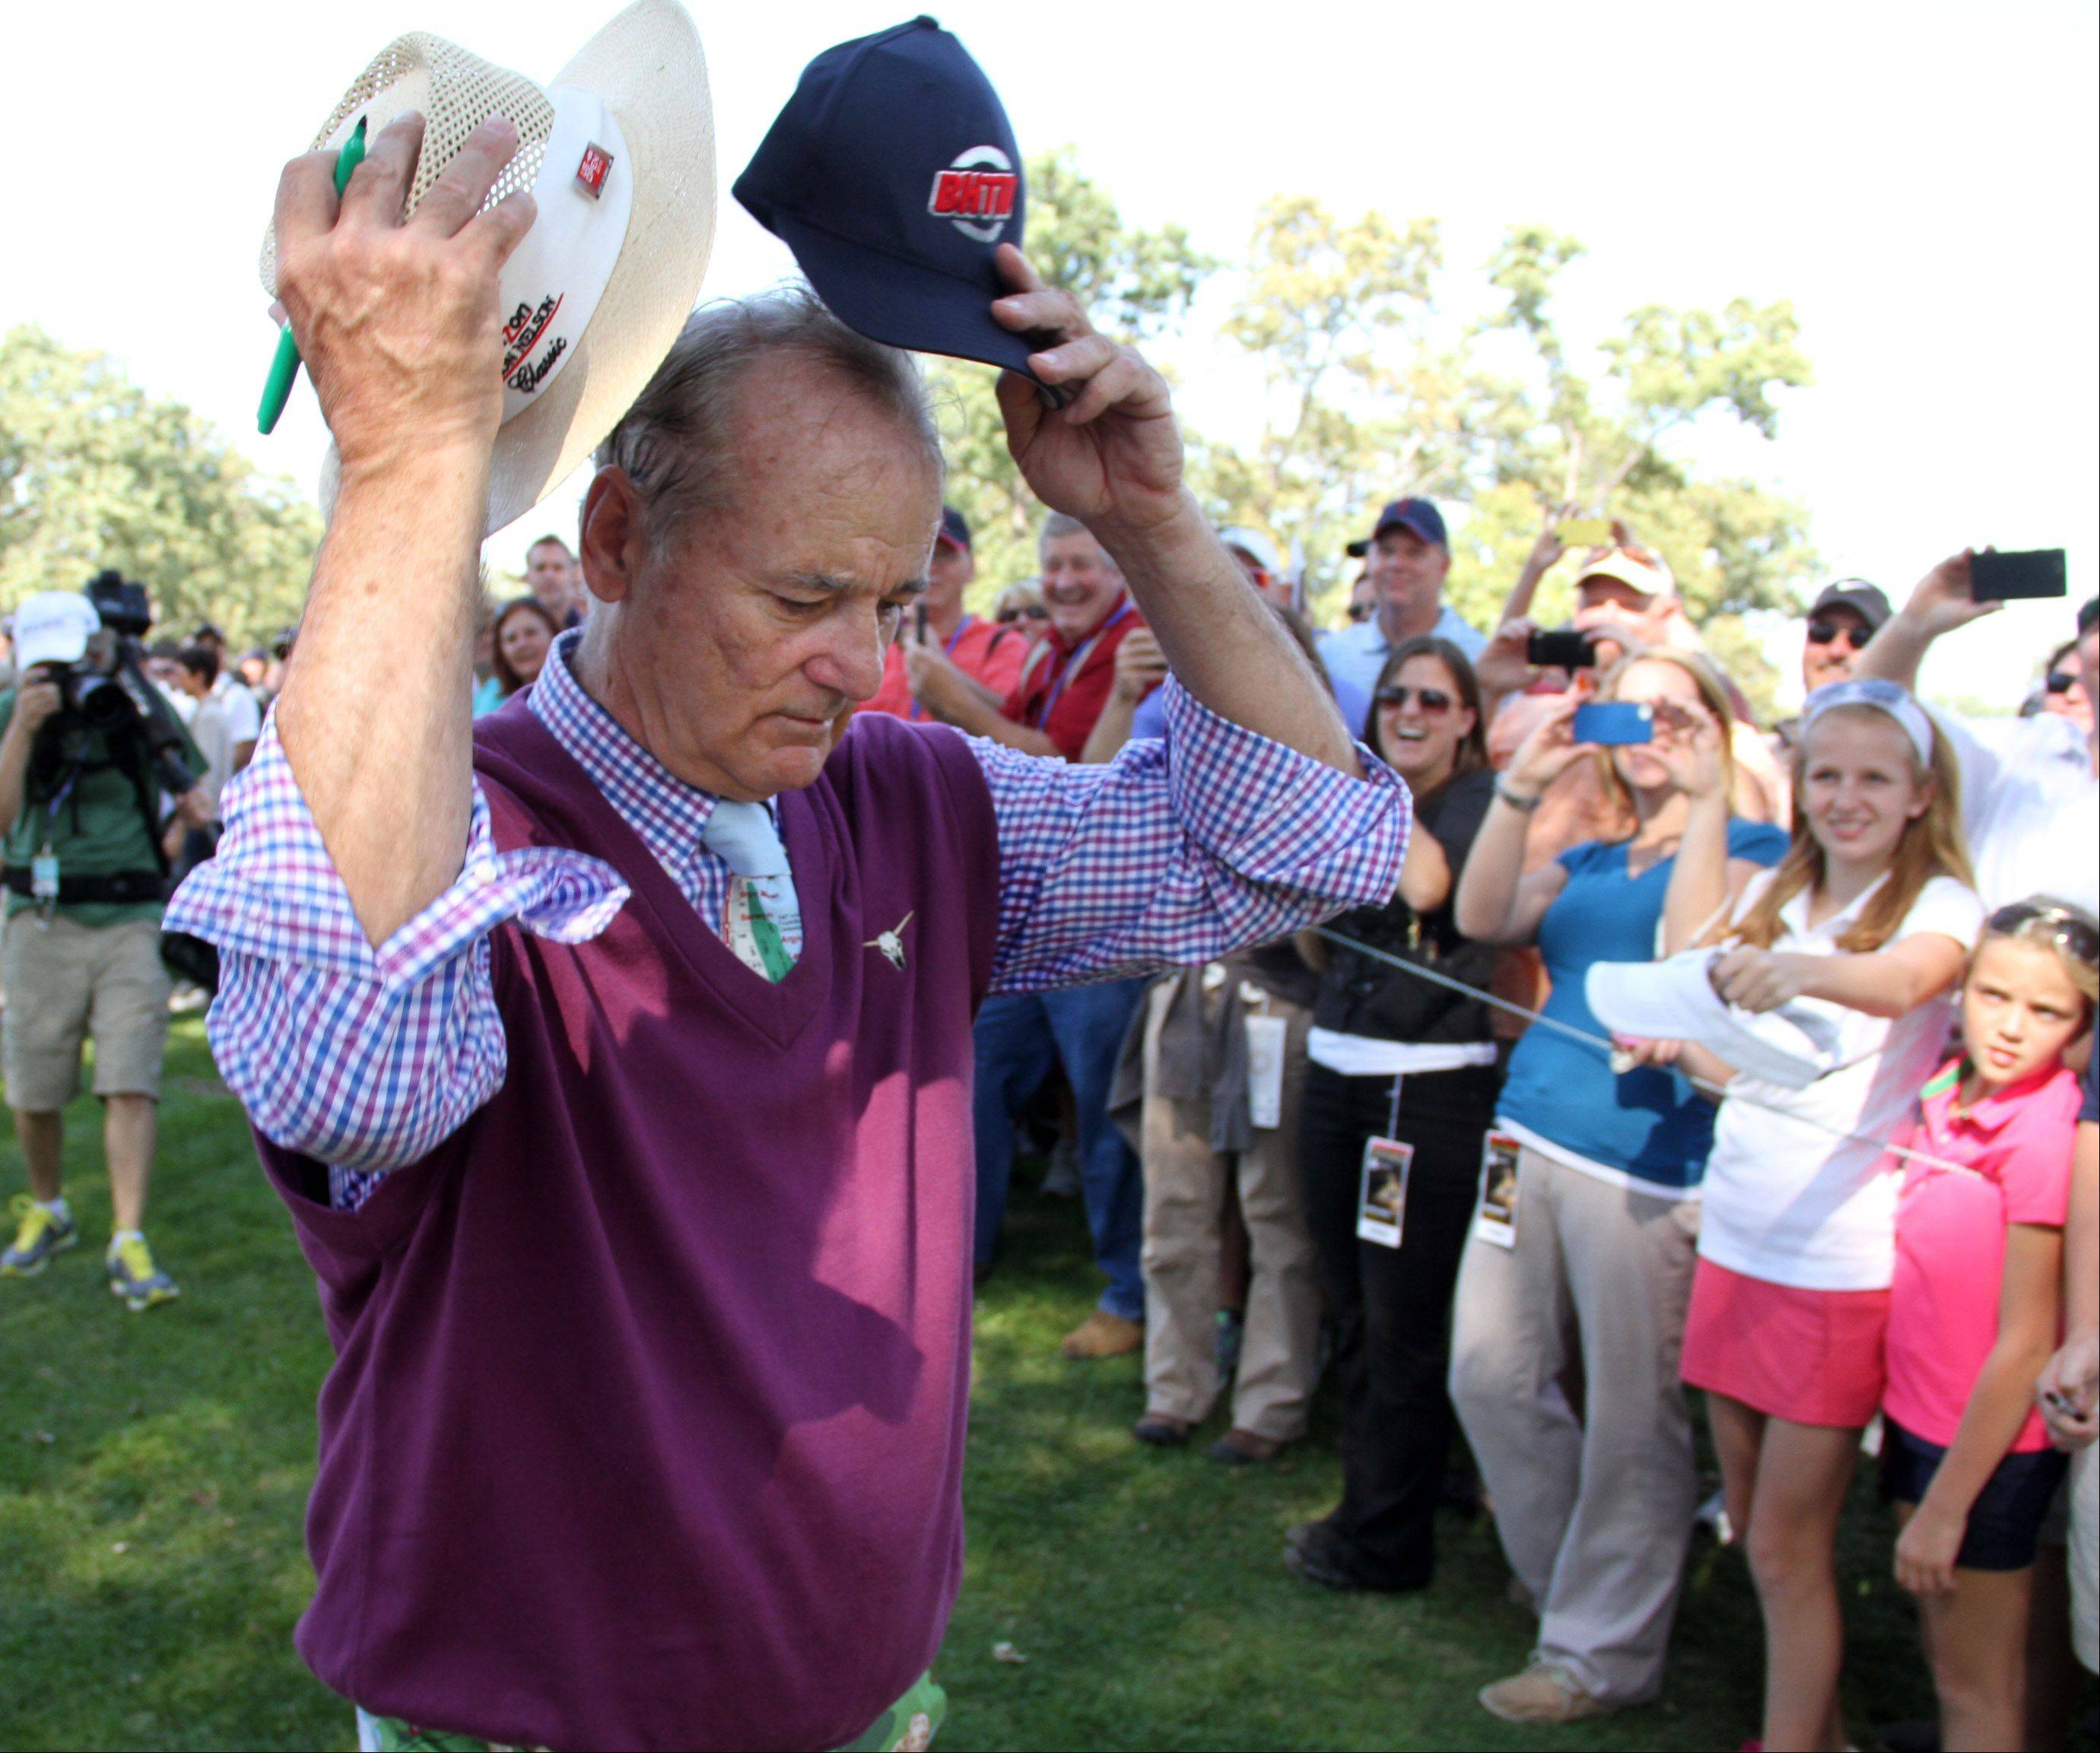 Bill Murray tries on a fans hat before offering an autograph.